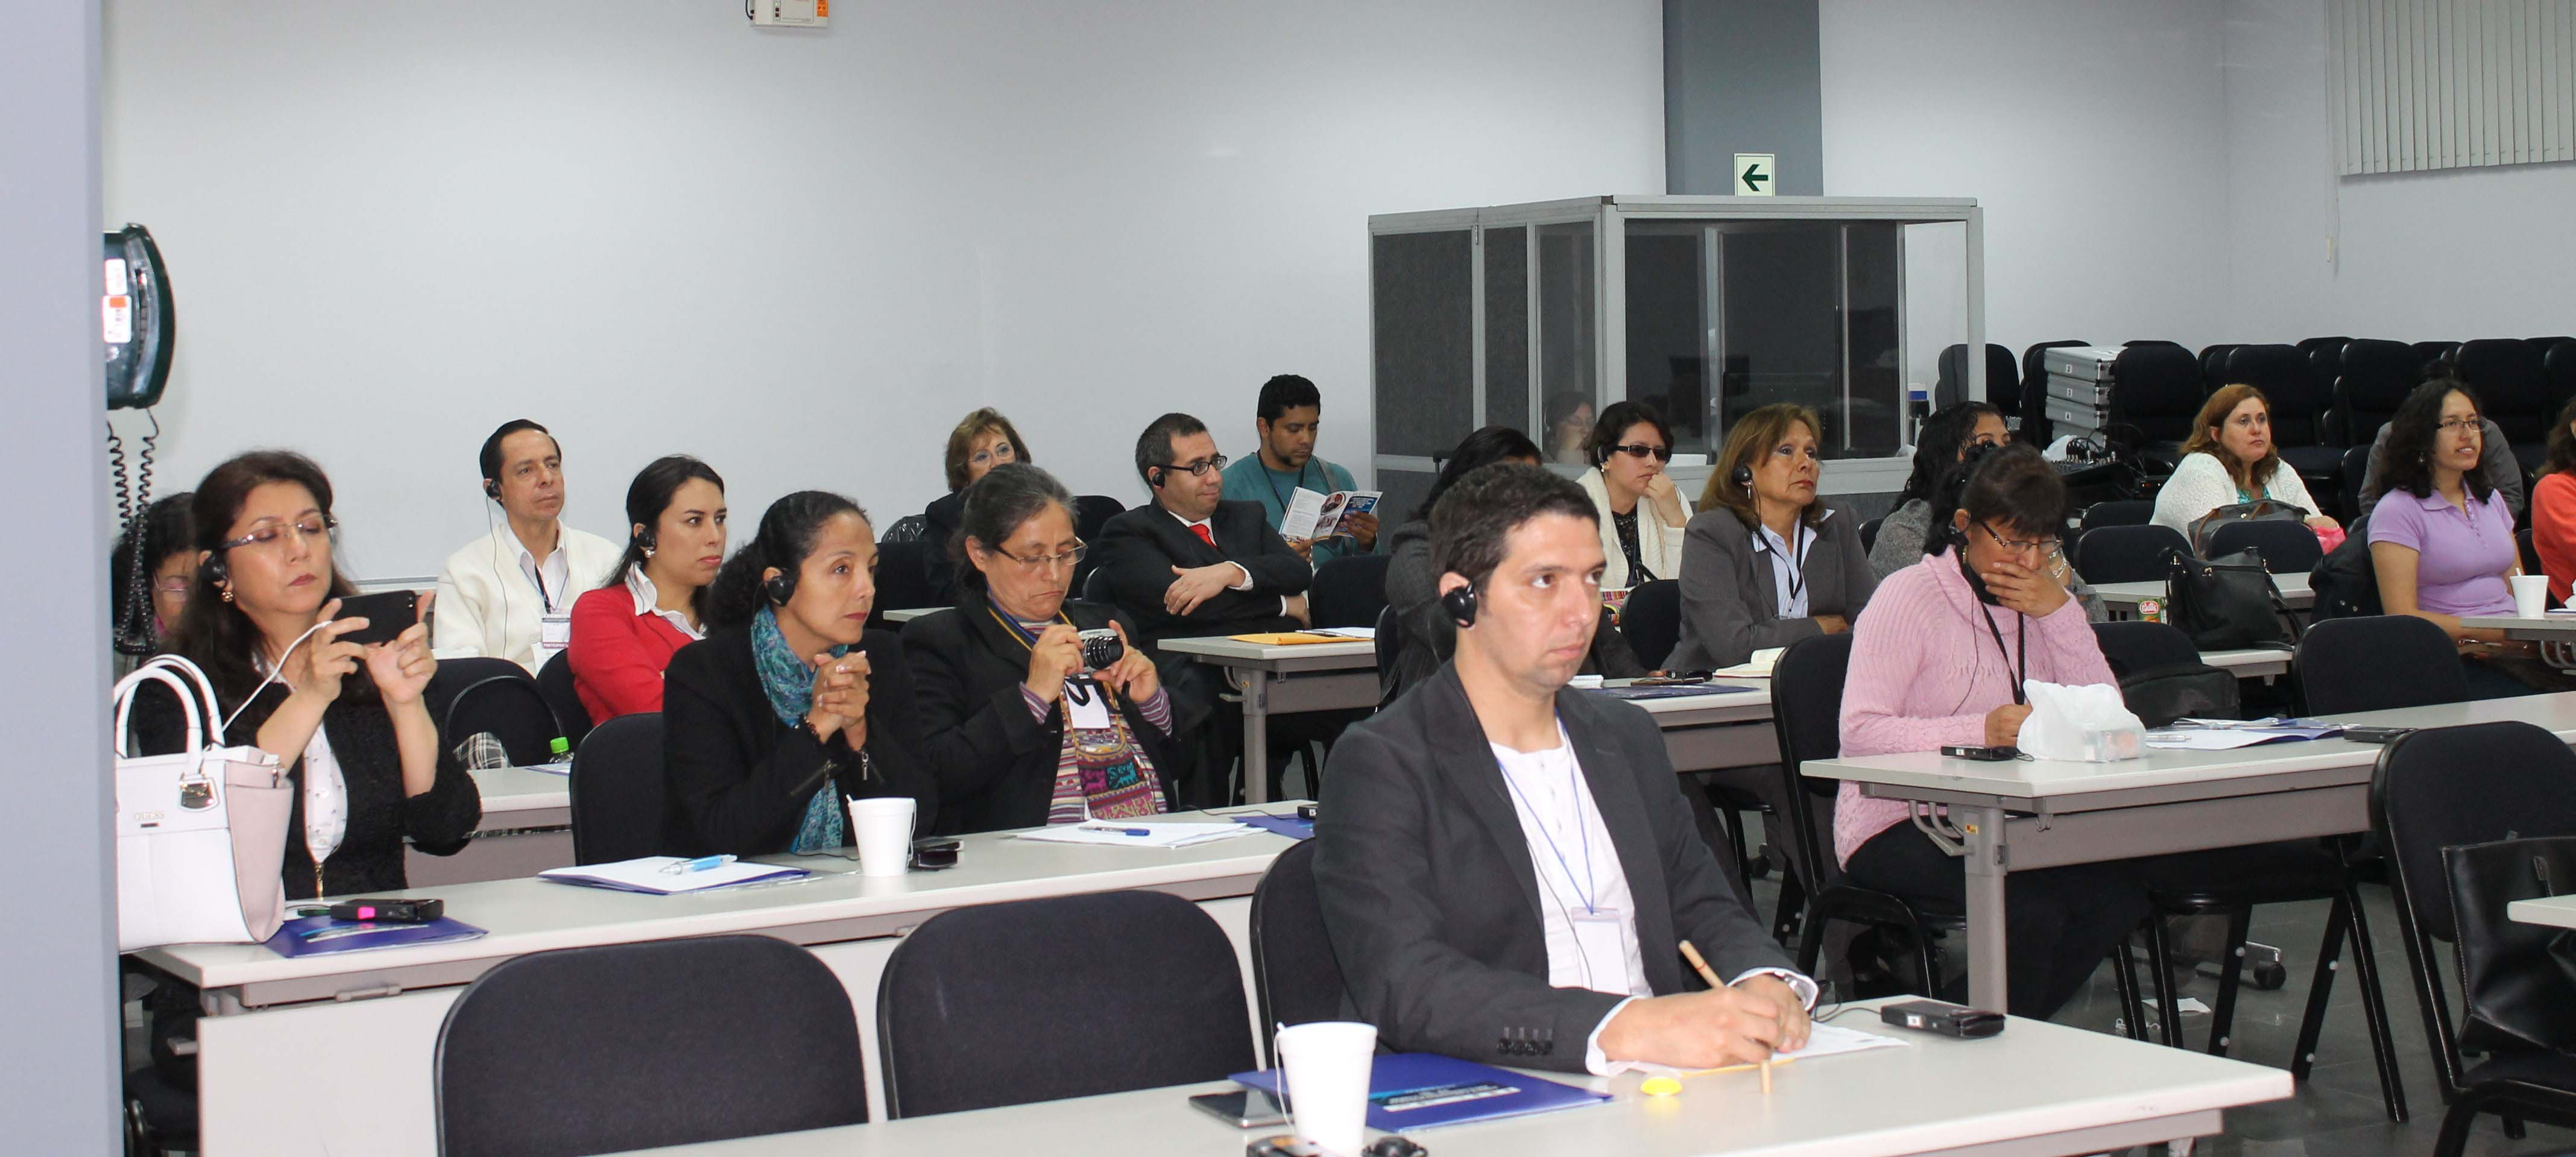 preventing-hearing-loss-in-peru-with-training-Peru-Hear-the-World-Foundation-01